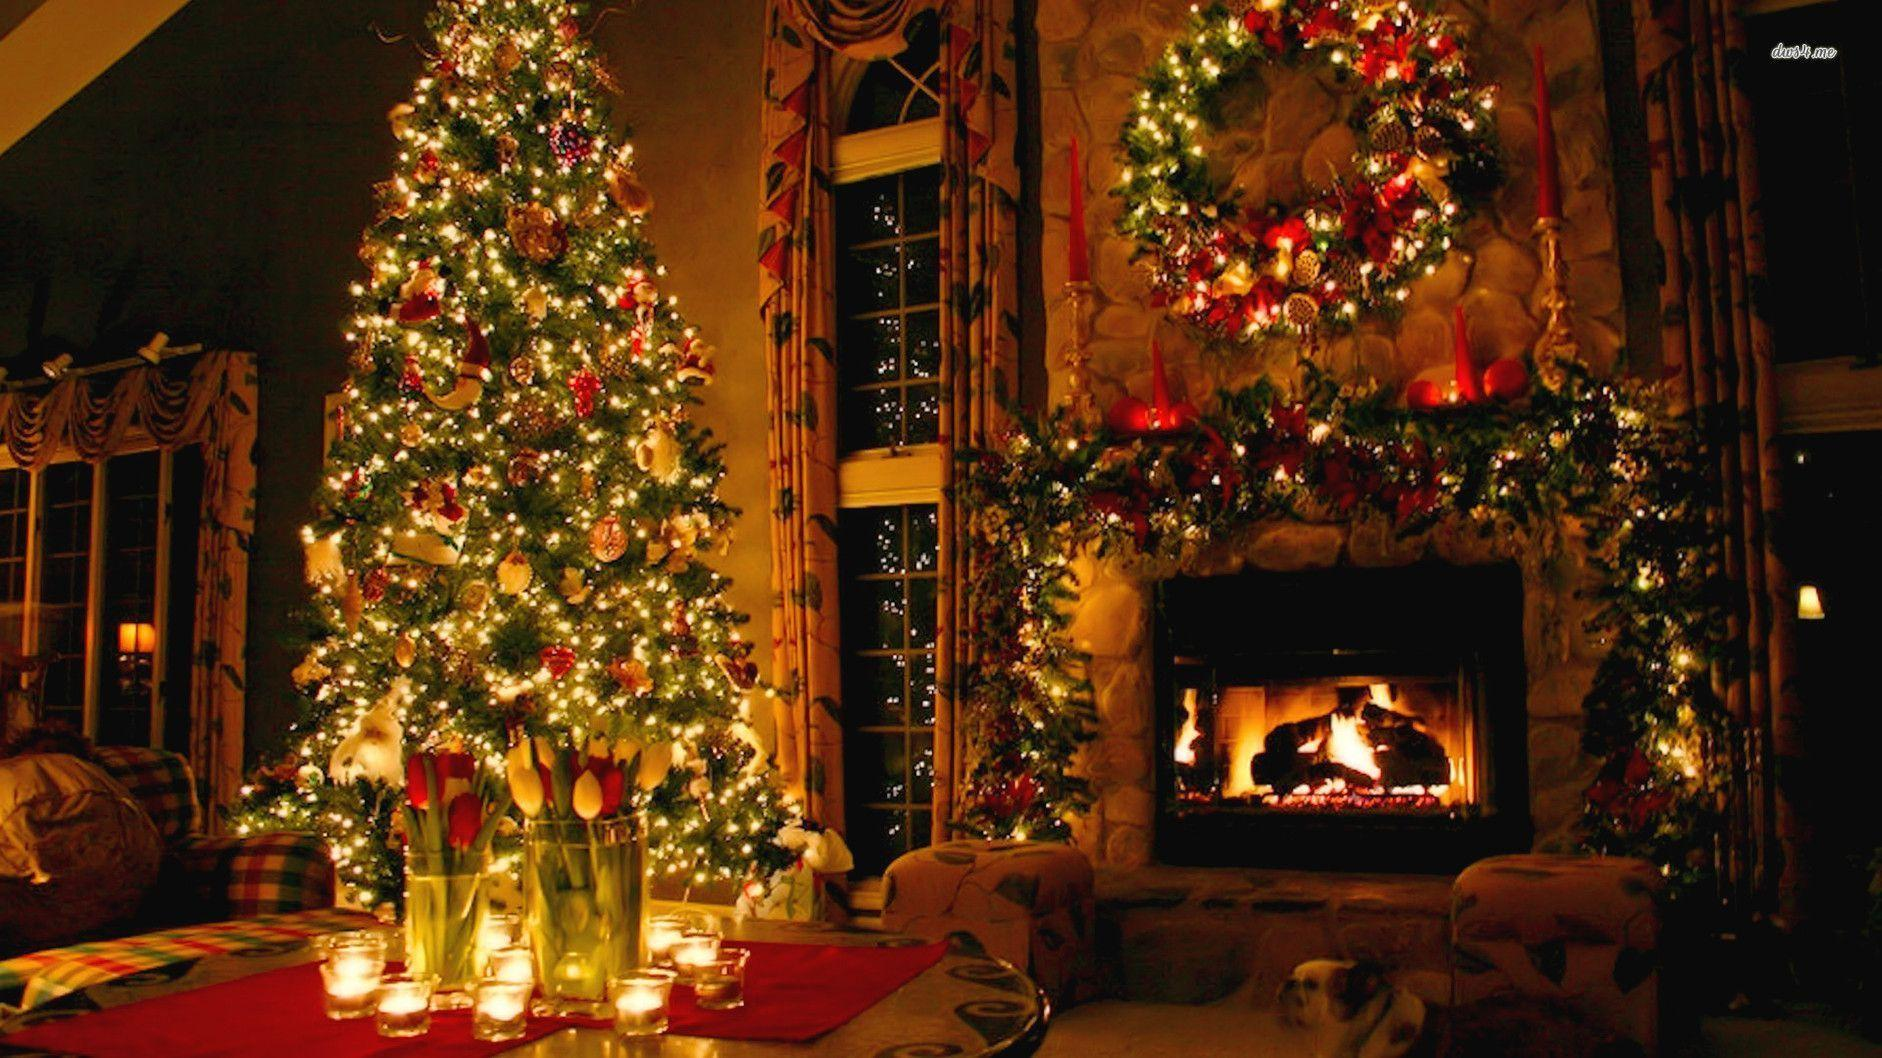 Christmas Fireplace Background Images amp Pictures   Becuo 1882x1058